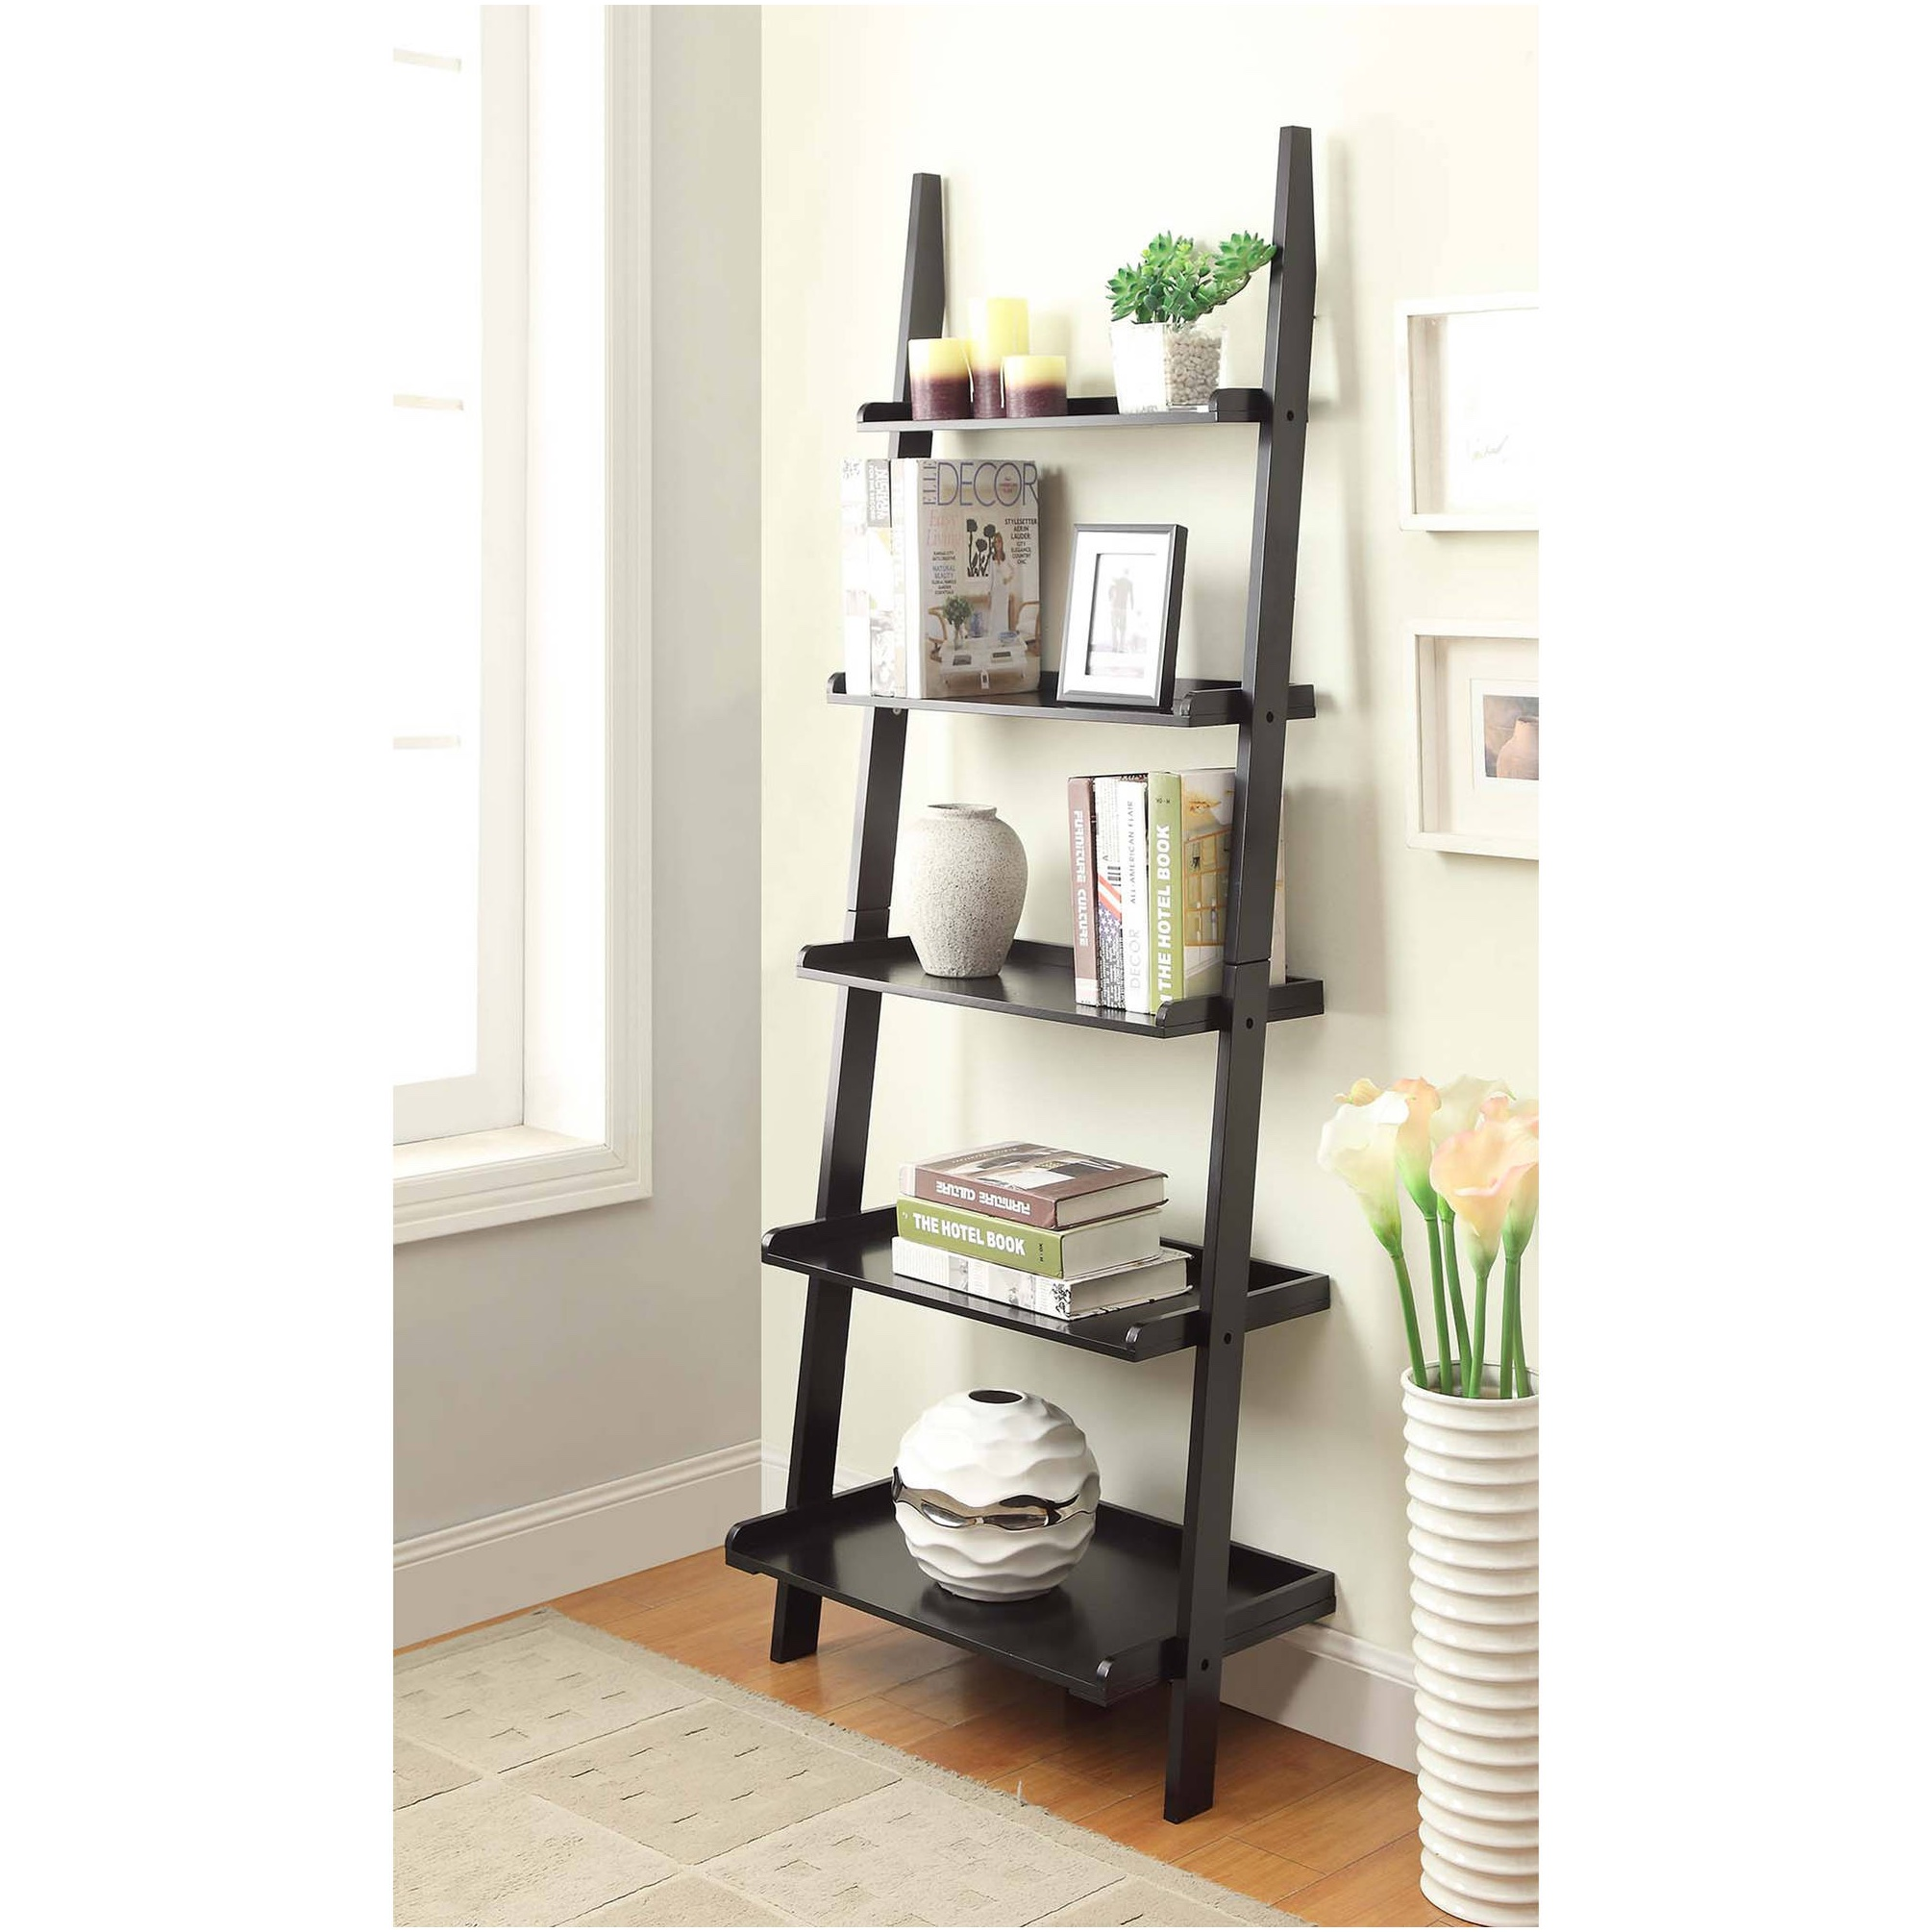 Dvd Shelves Walmart | Walmart Bathroom Shelves | Walmart Shelving